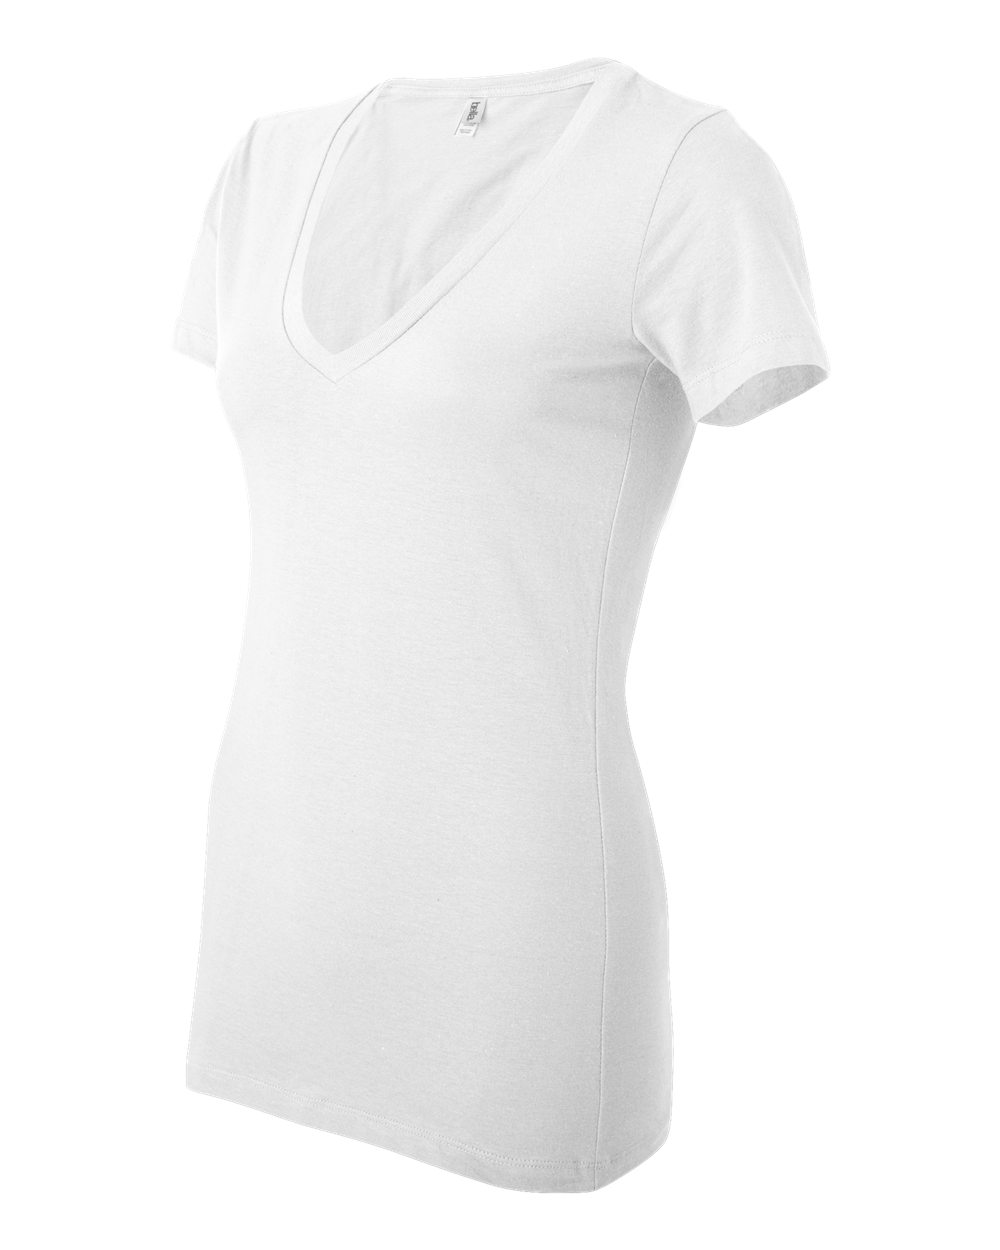 Bella-Canvas-Women-039-s-Jersey-Short-Sleeve-Deep-V-Neck-T-Shirt-B6035-S-2XL thumbnail 63